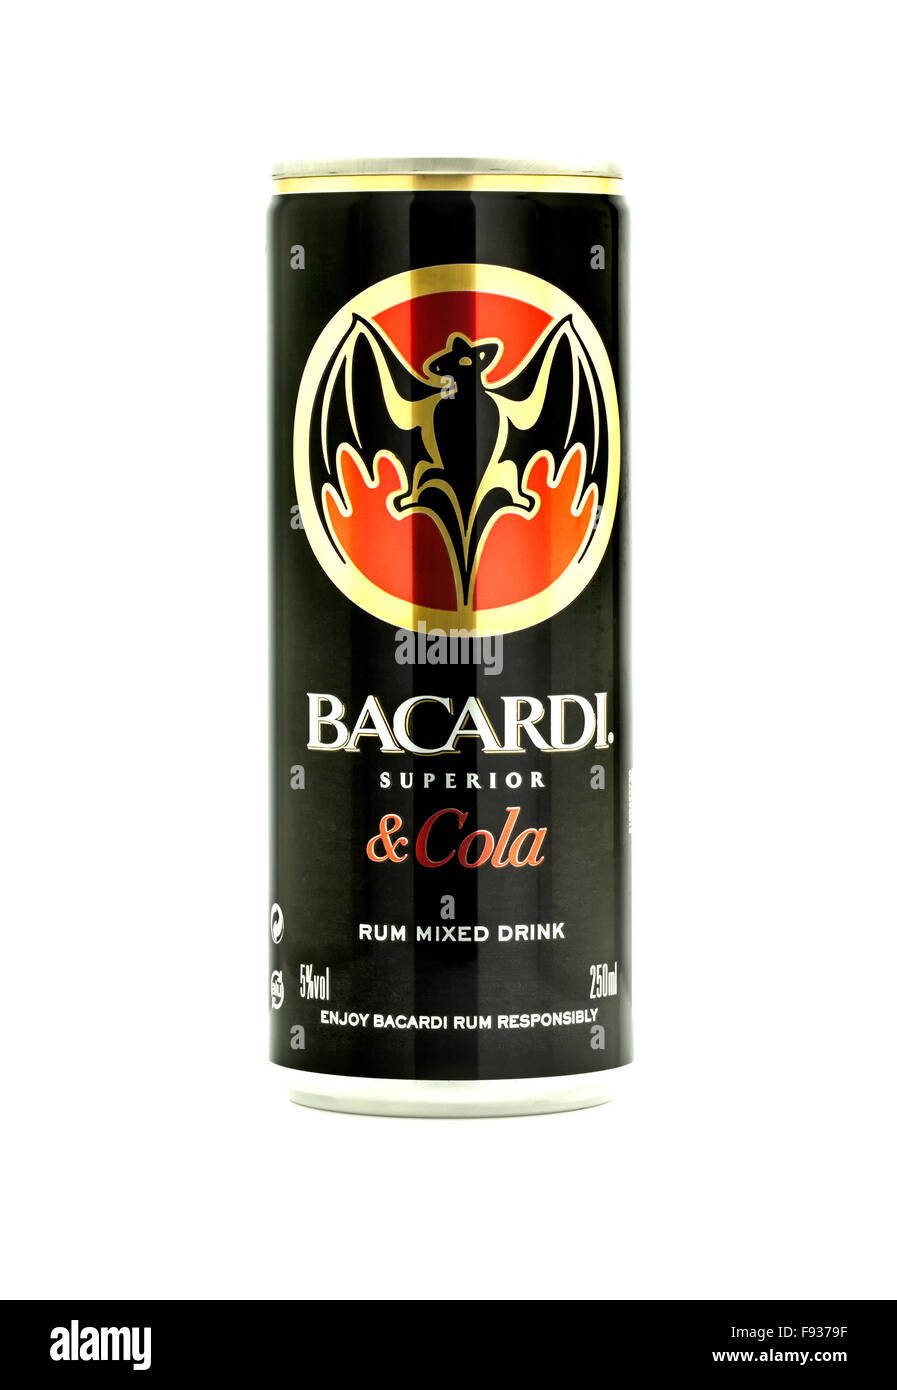 Can Of Bacardi and Cola mixer drink on a white background - Stock Image